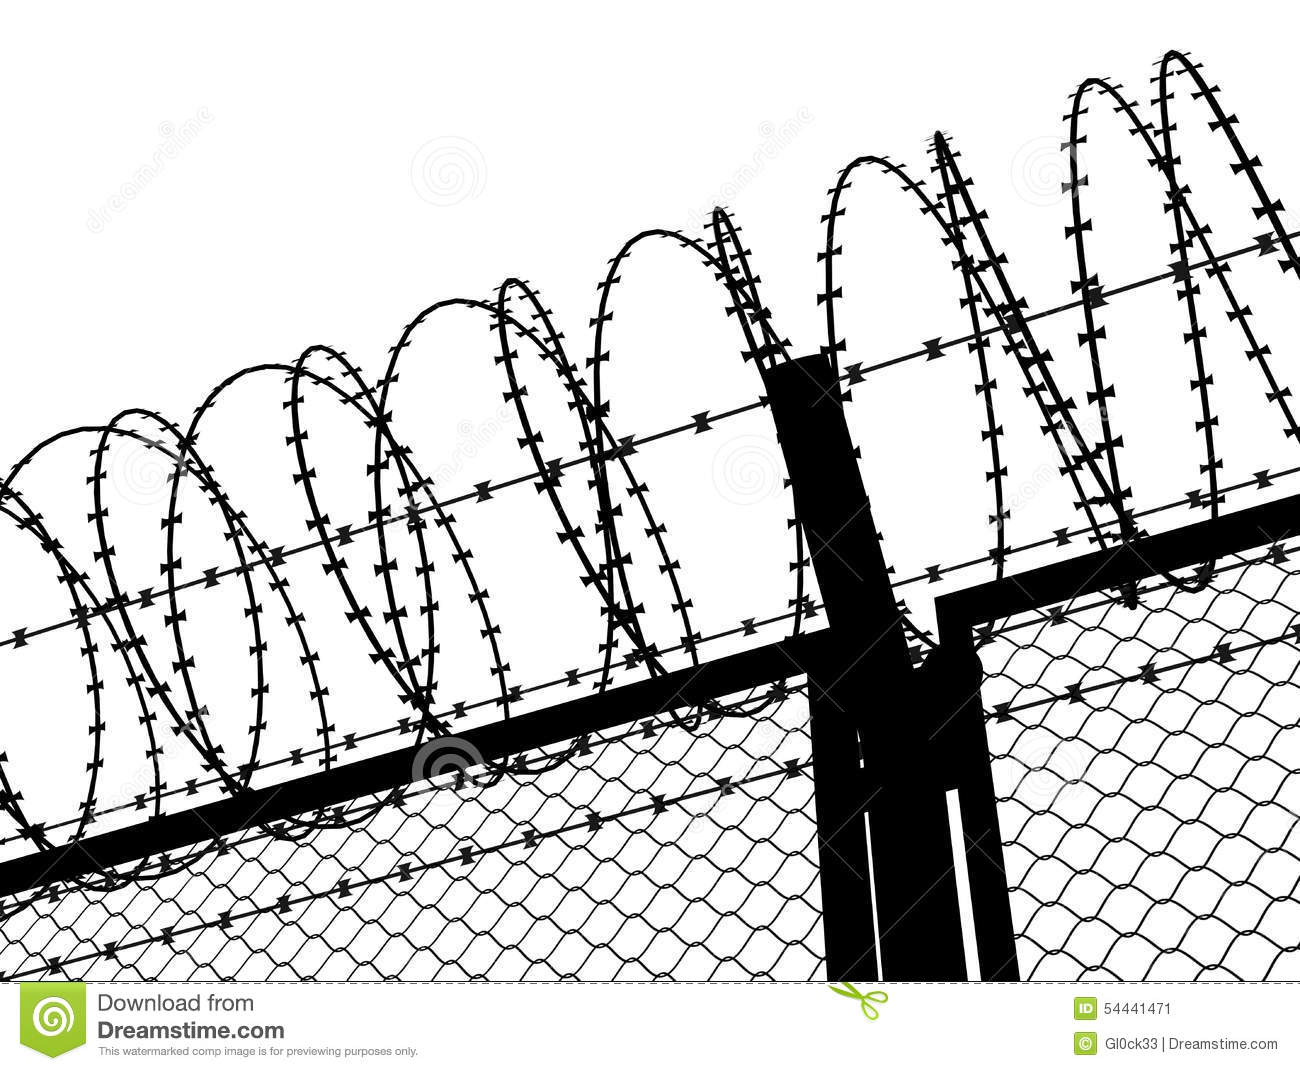 Fence with a barbed wire stock illustration. Illustration of safety ...